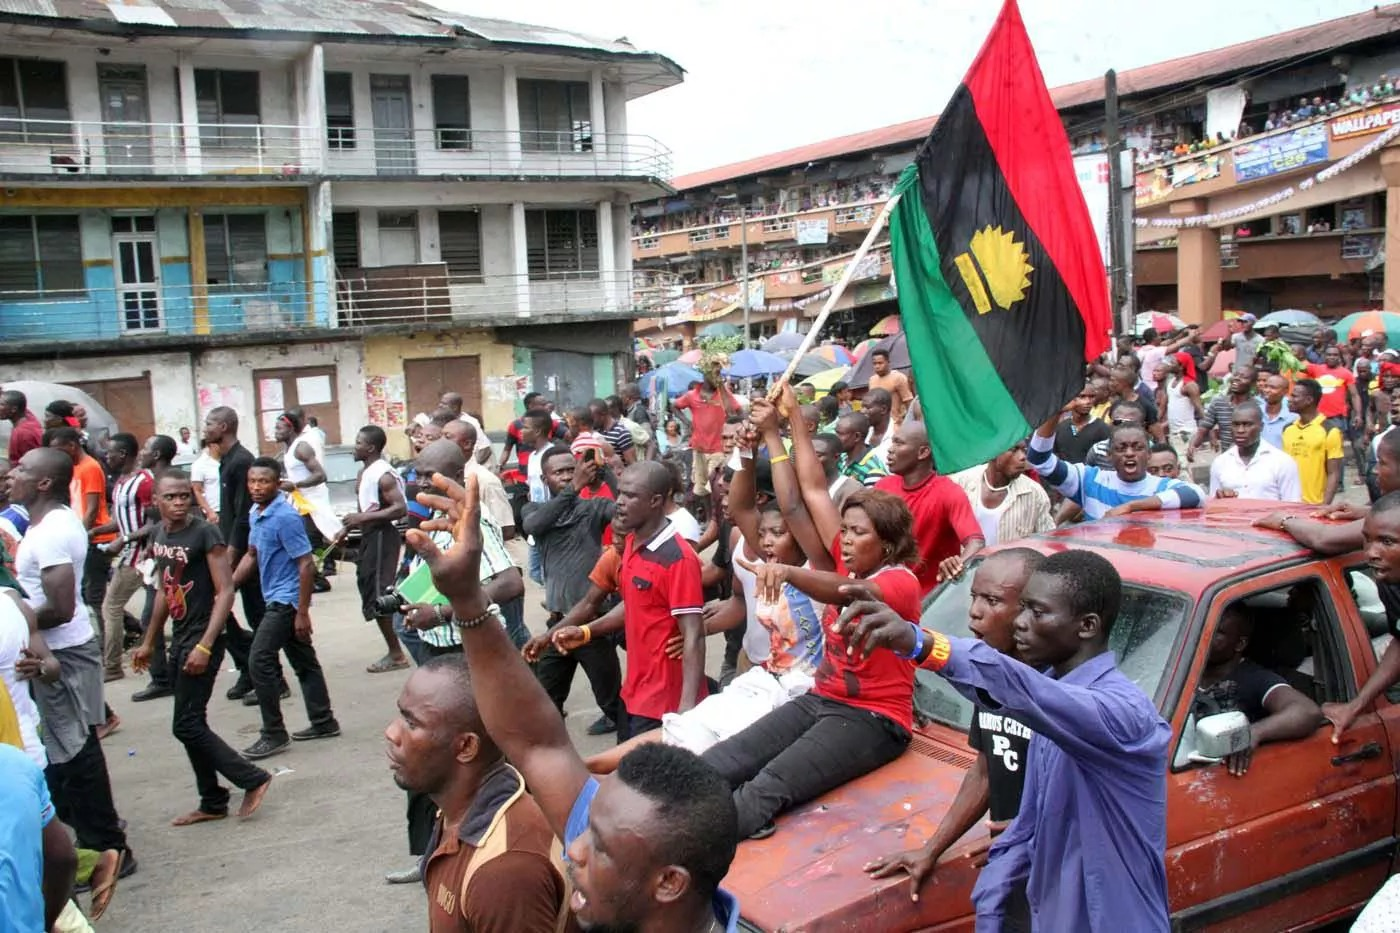 Biafra and scotland s plans on a second referendum for restoration of independence pambazuka news